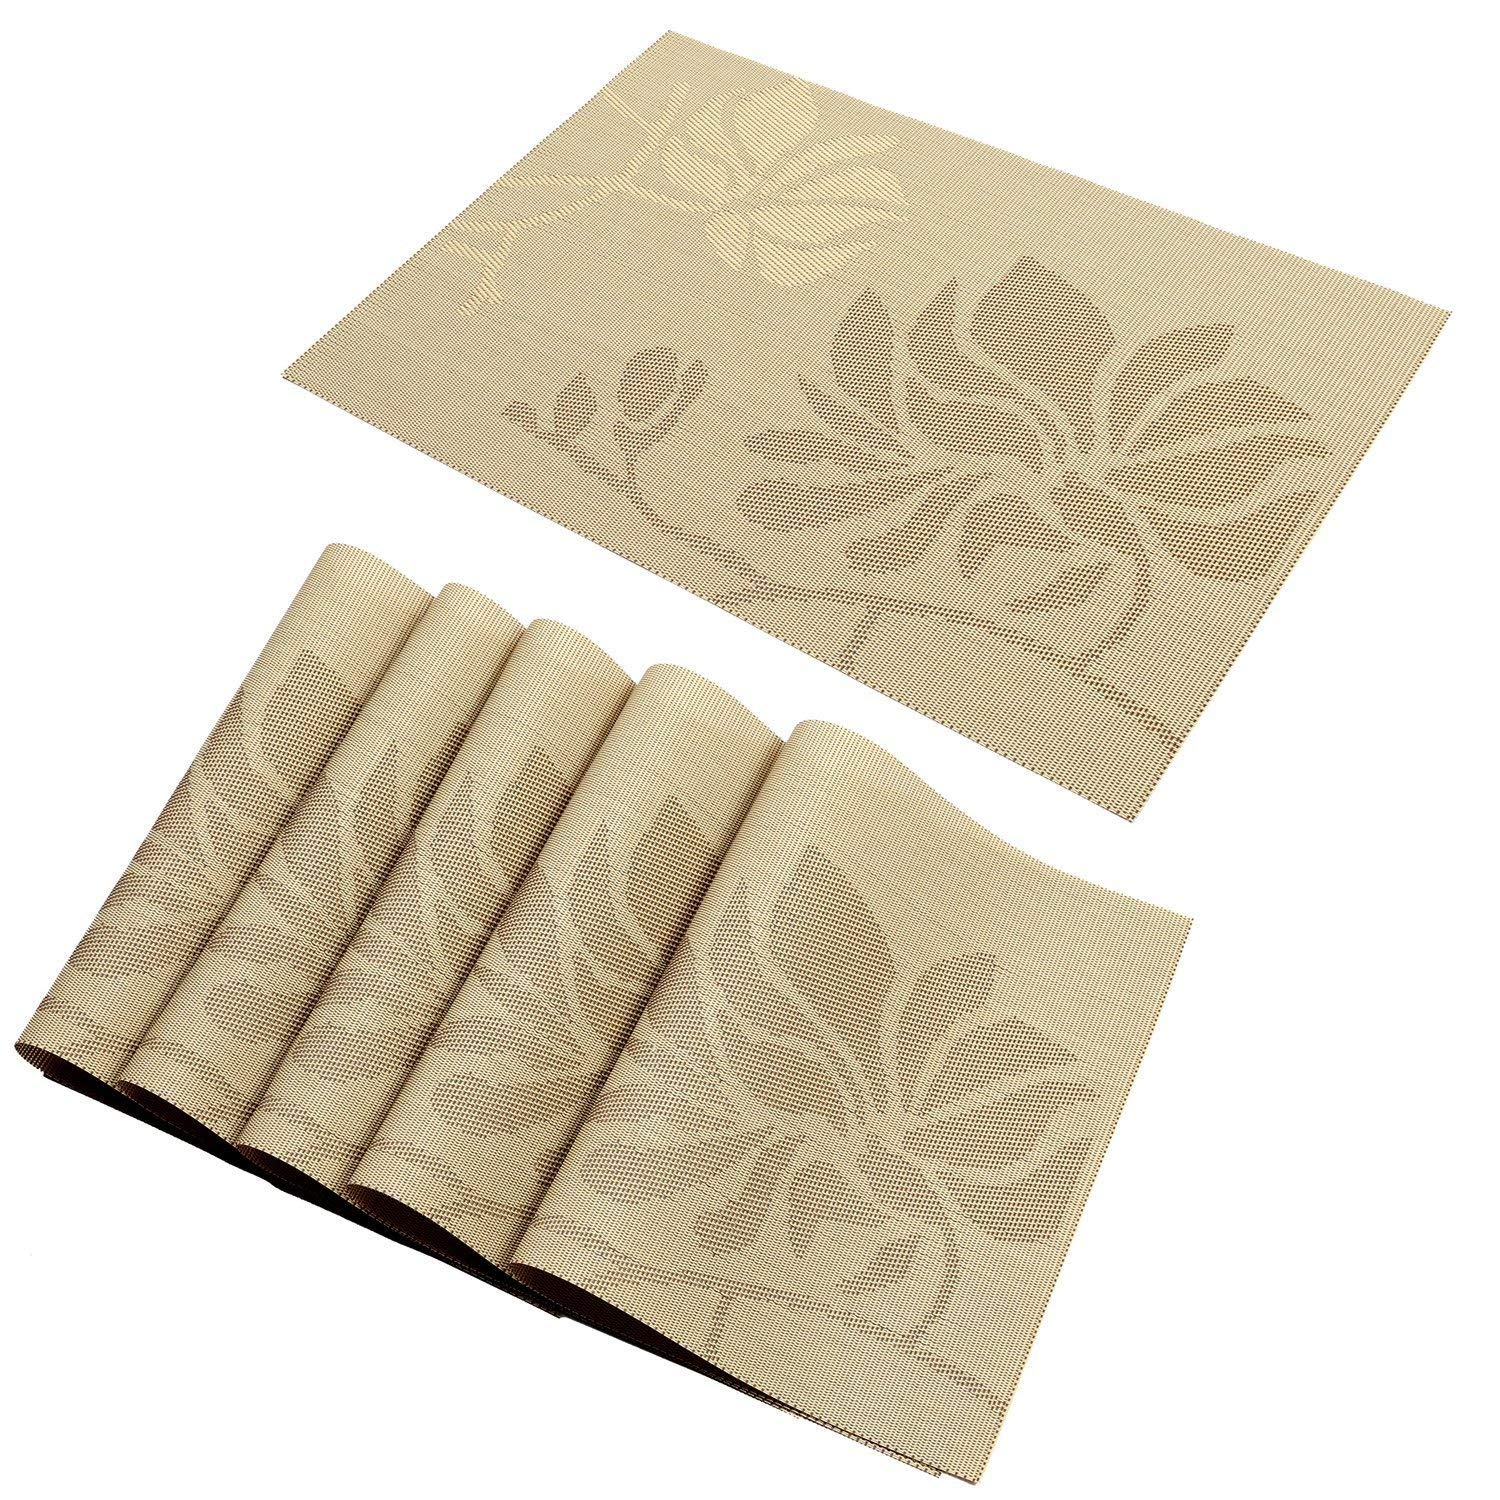 hebe Placemats Set of 8 Durable Placemat for Dining Table Heat Resistant Crossweave Woven Vinyl Kitchen Table Mats Placemat Washable Easy Clean(Cream, 8)